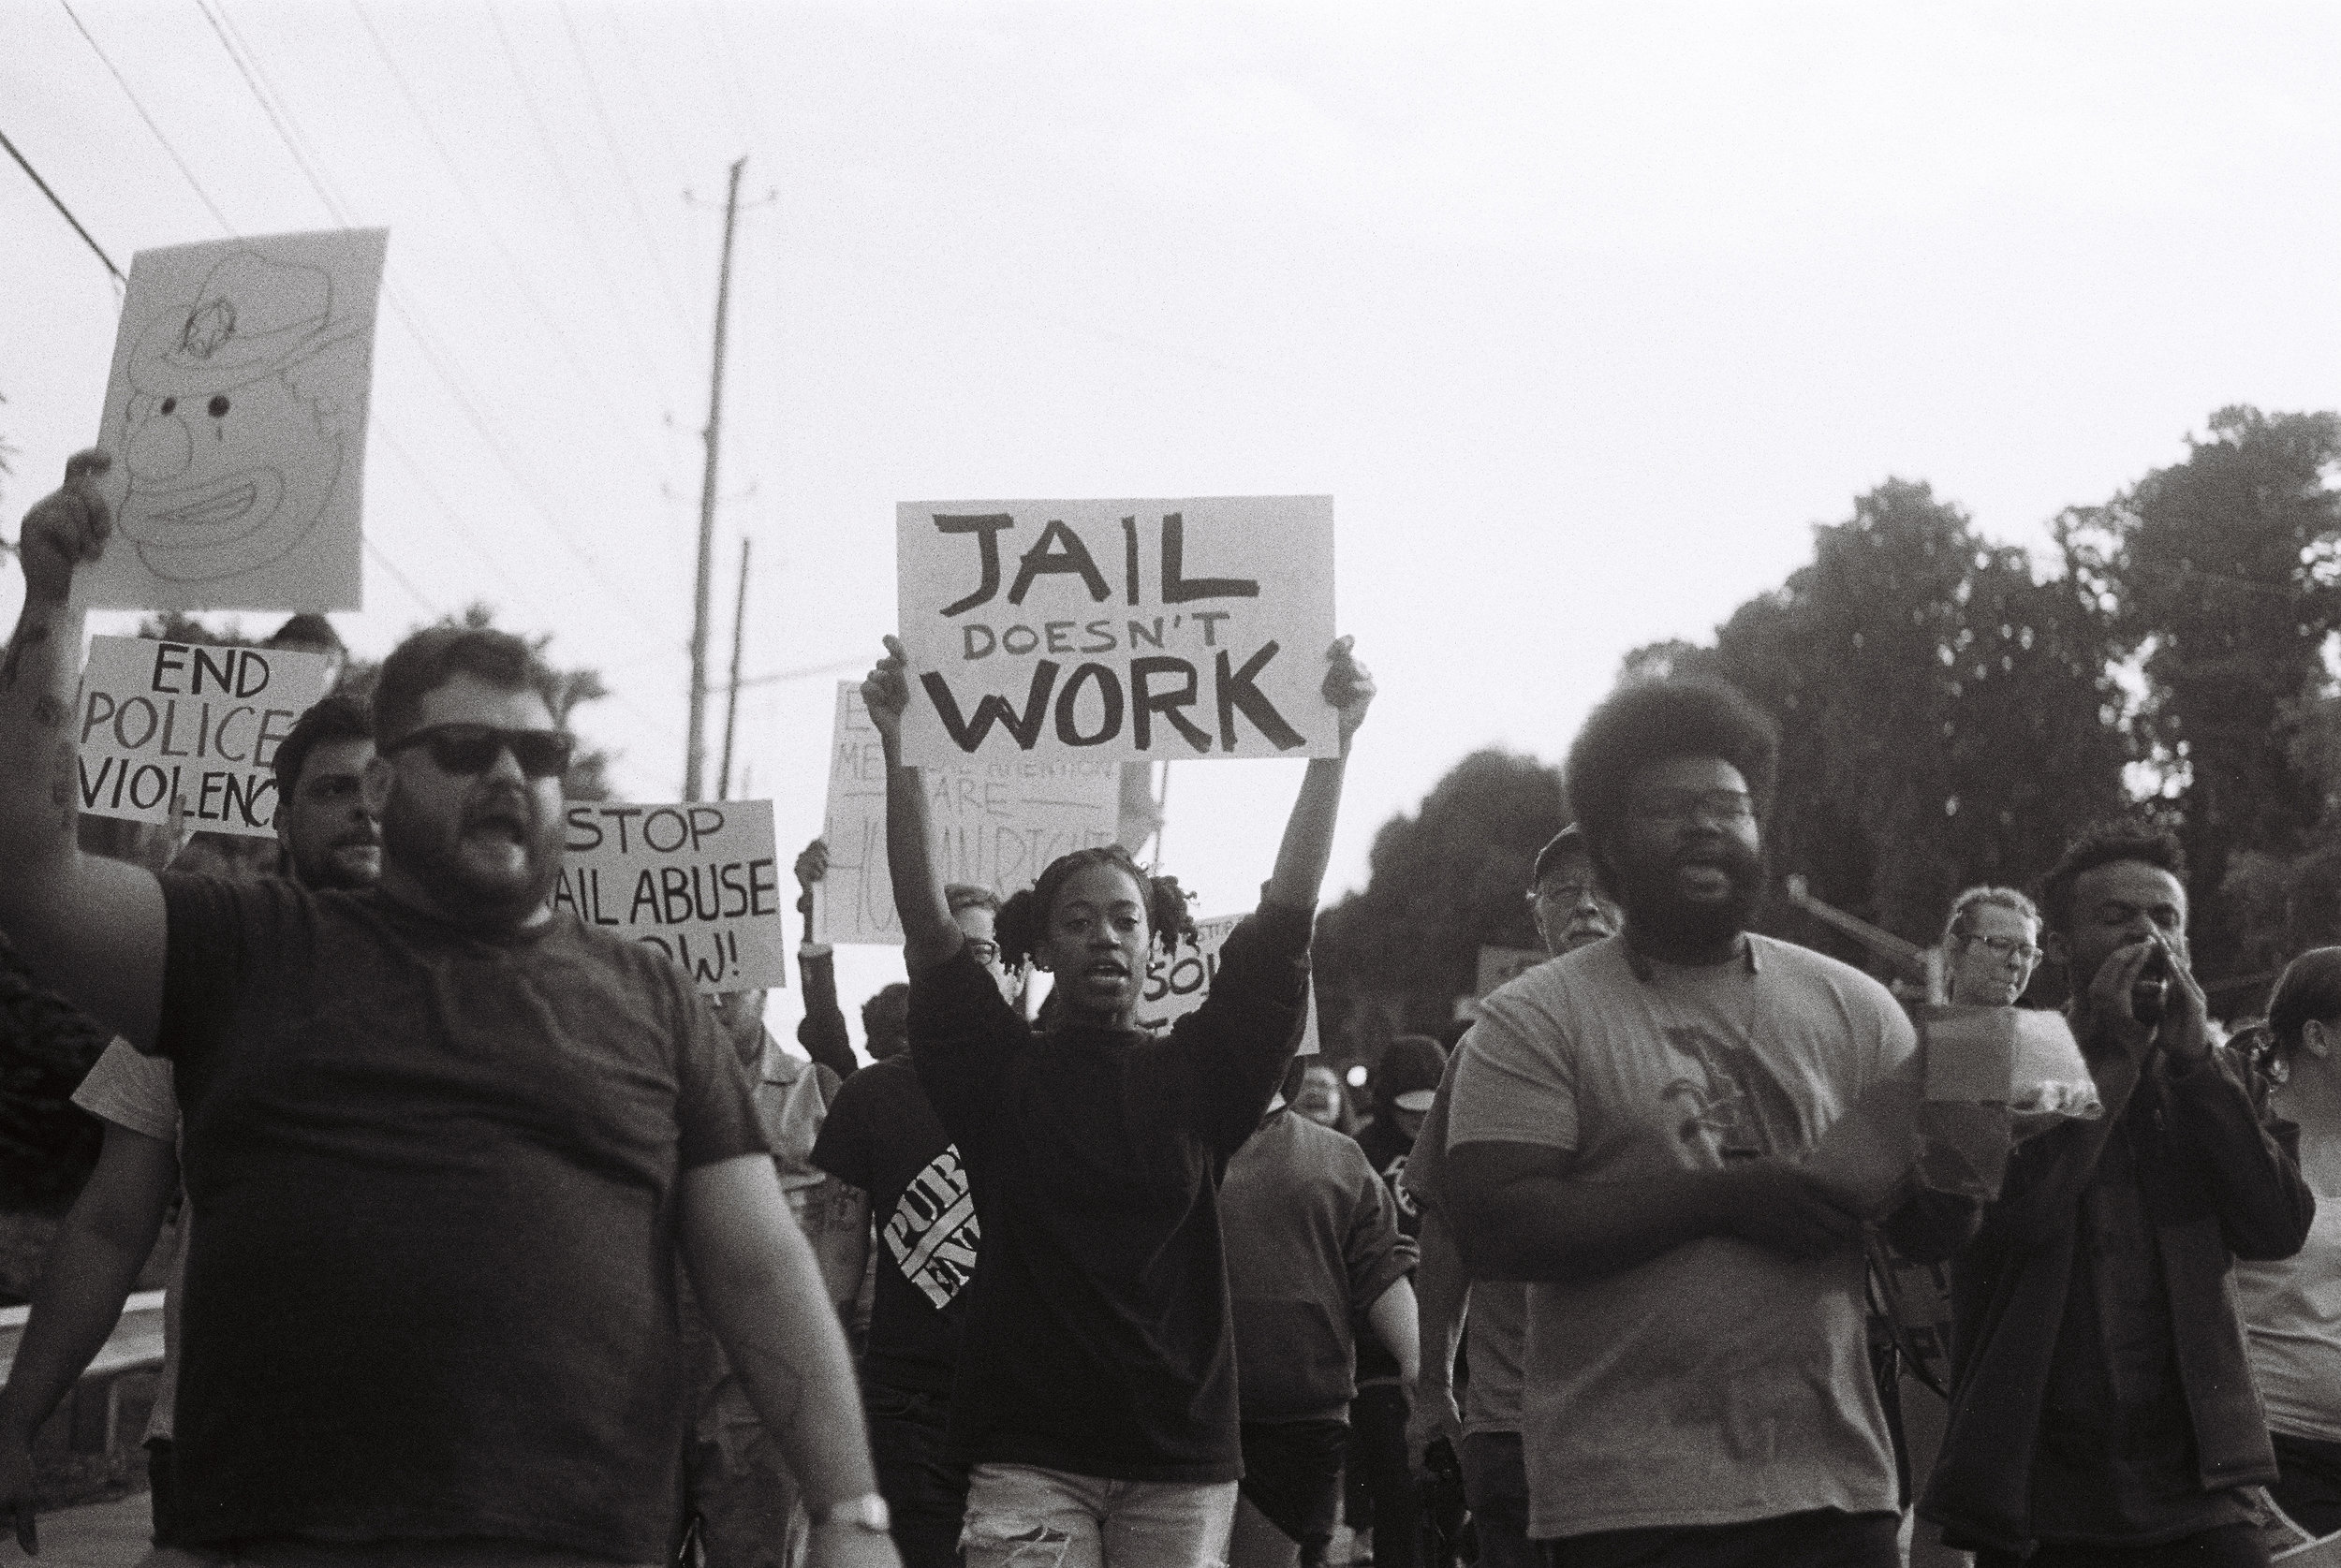 Dekalb Jail Action - May 15, 2019